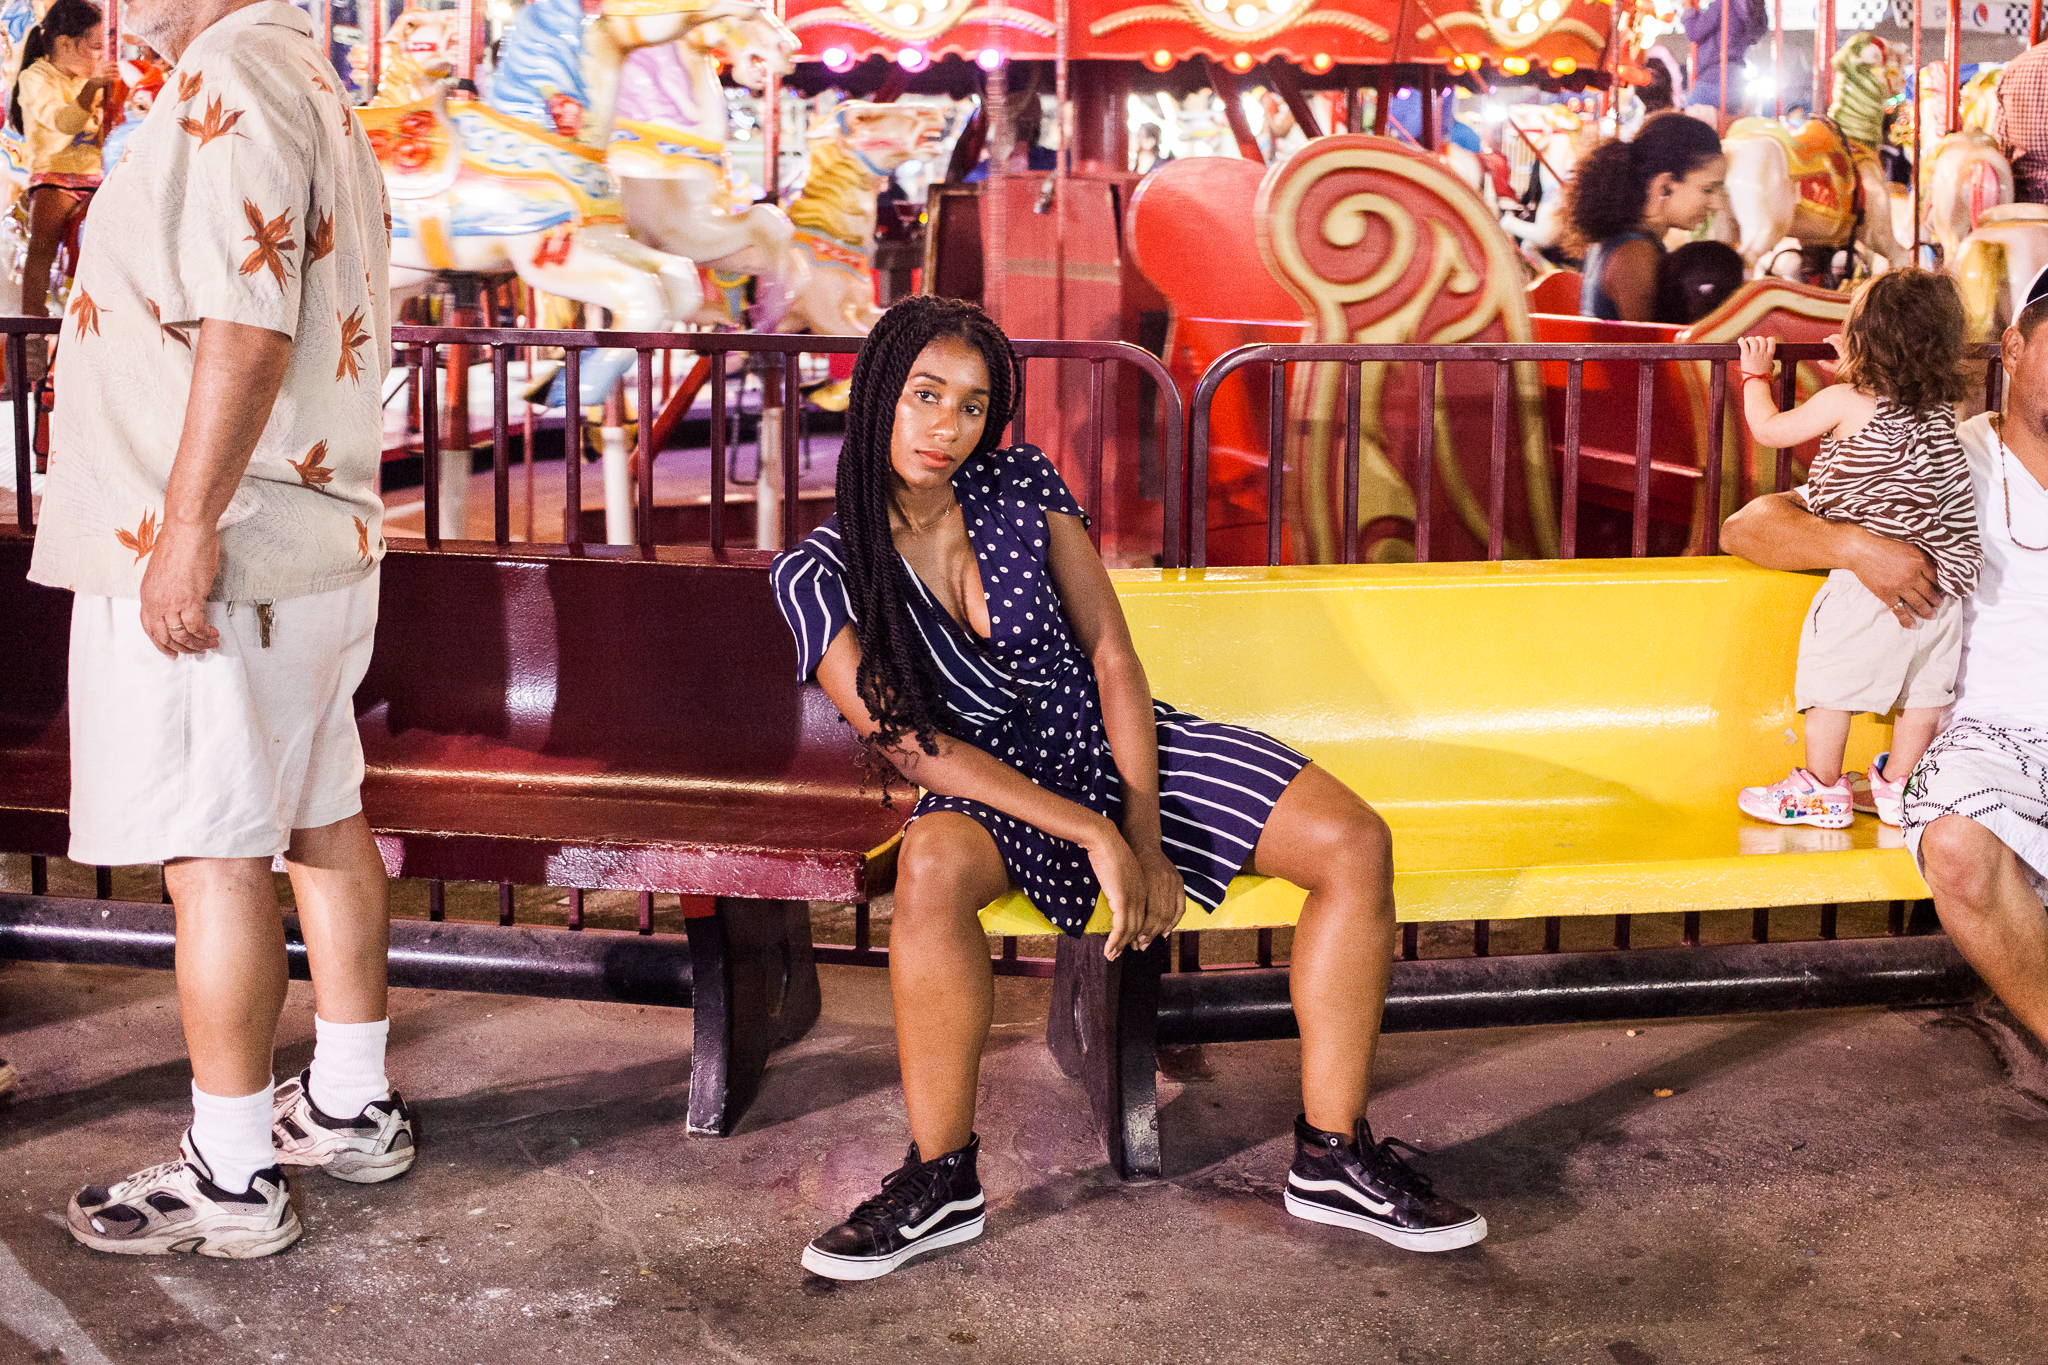 whomstudio_iman-artwell-freeman_coney-island_nyc_0083-web.jpg